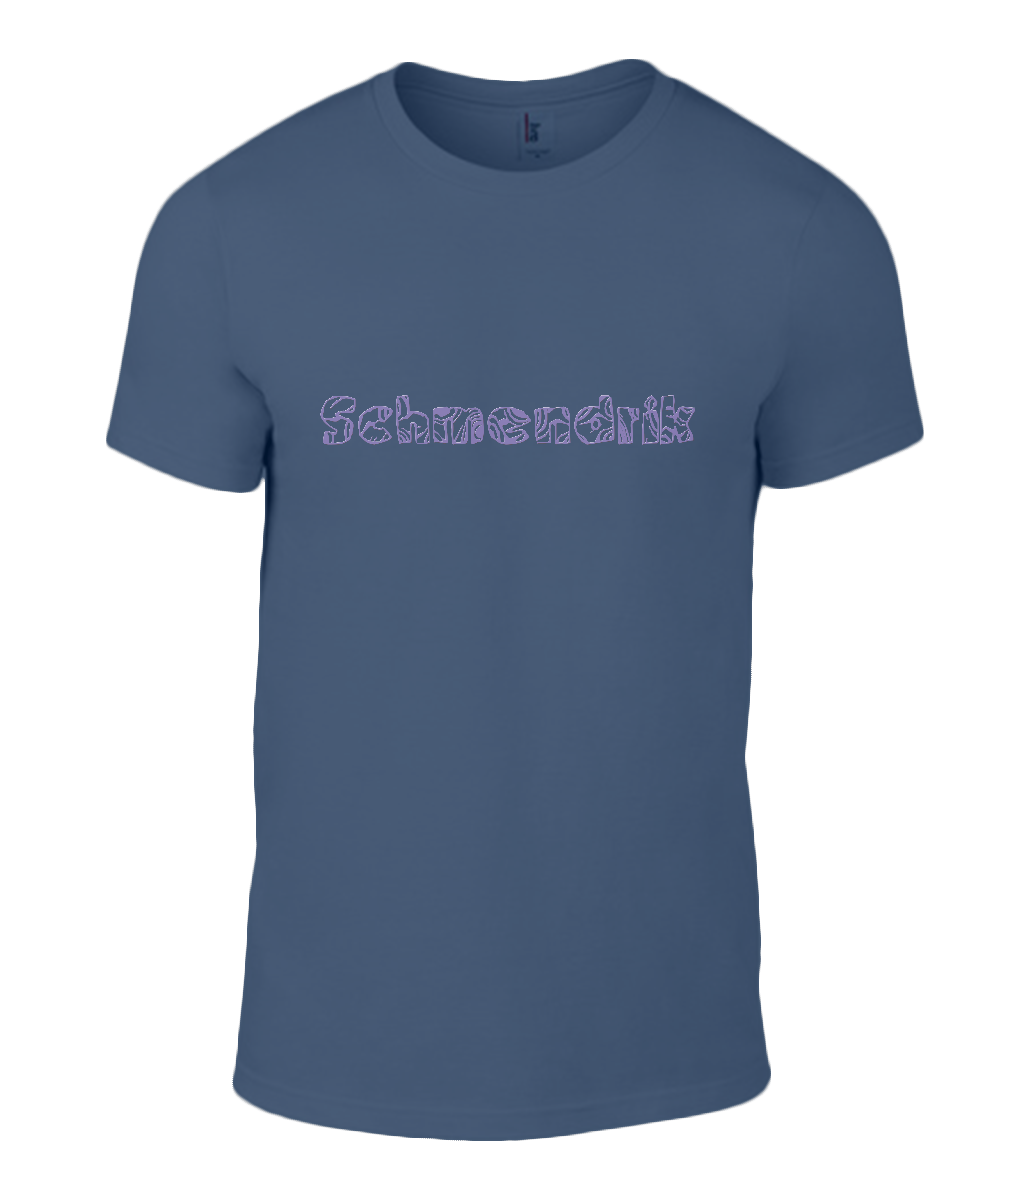 Round Neck T-Shirt - Schmendrick - Lokshen Pudding UK - Navy